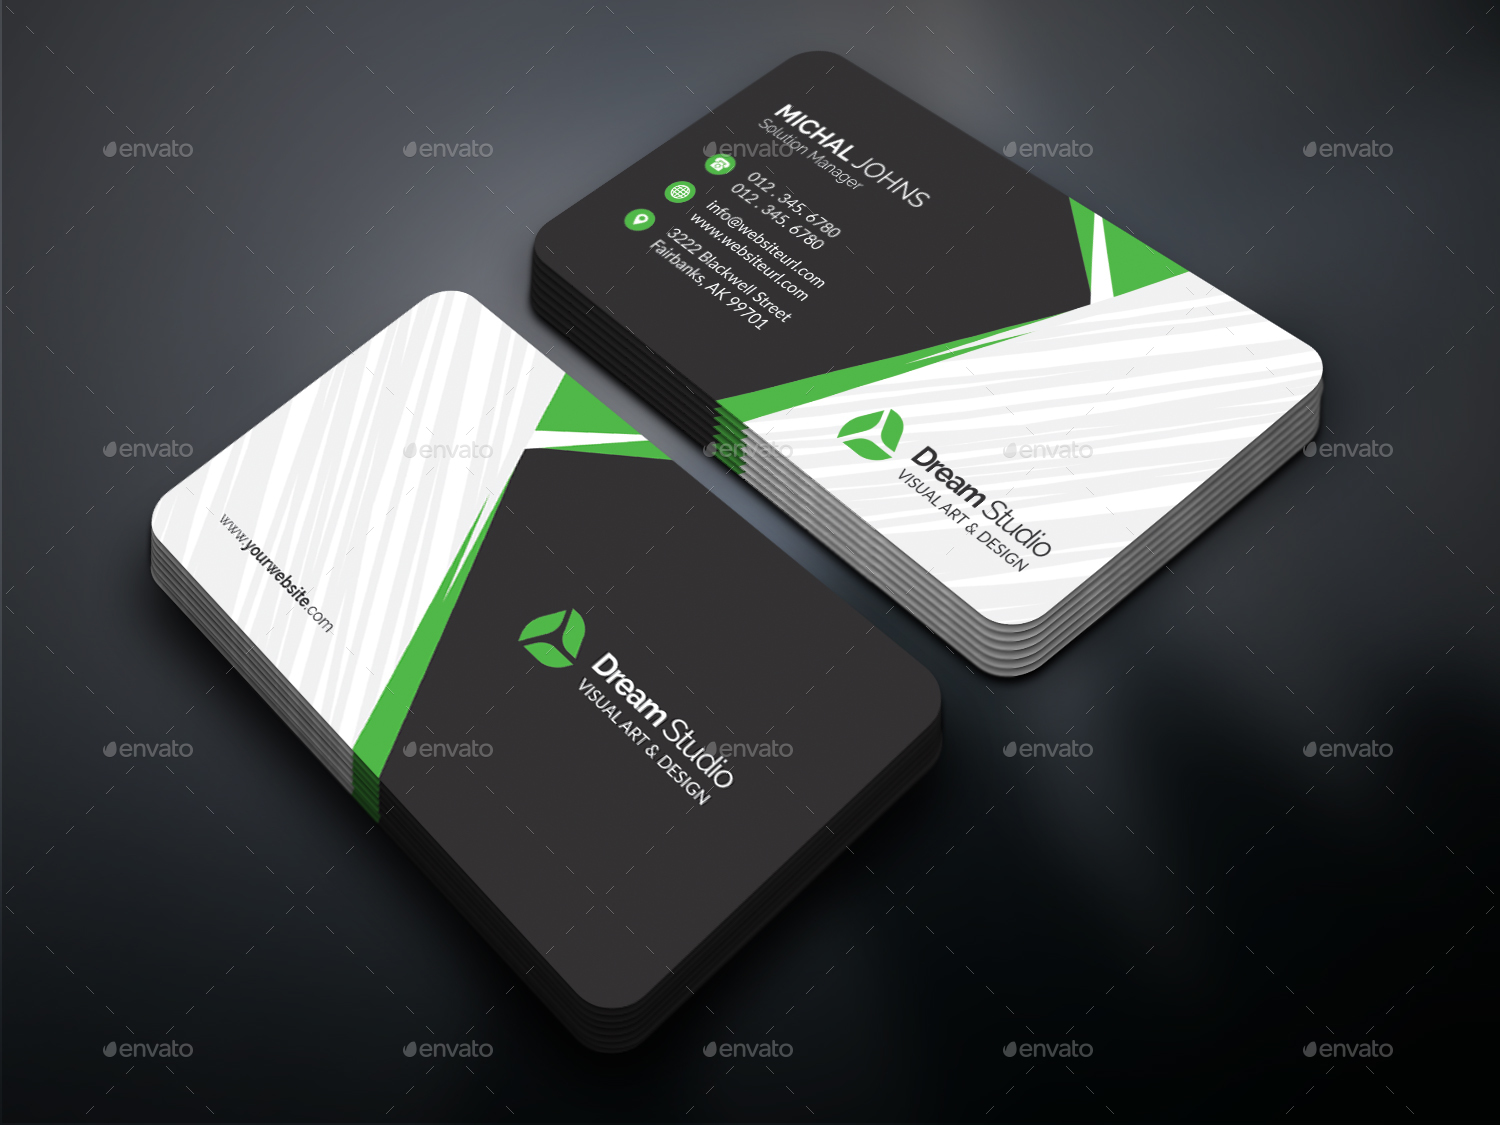 Business cards by dreamstudio eg graphicriver preview image setpreview01g reheart Gallery